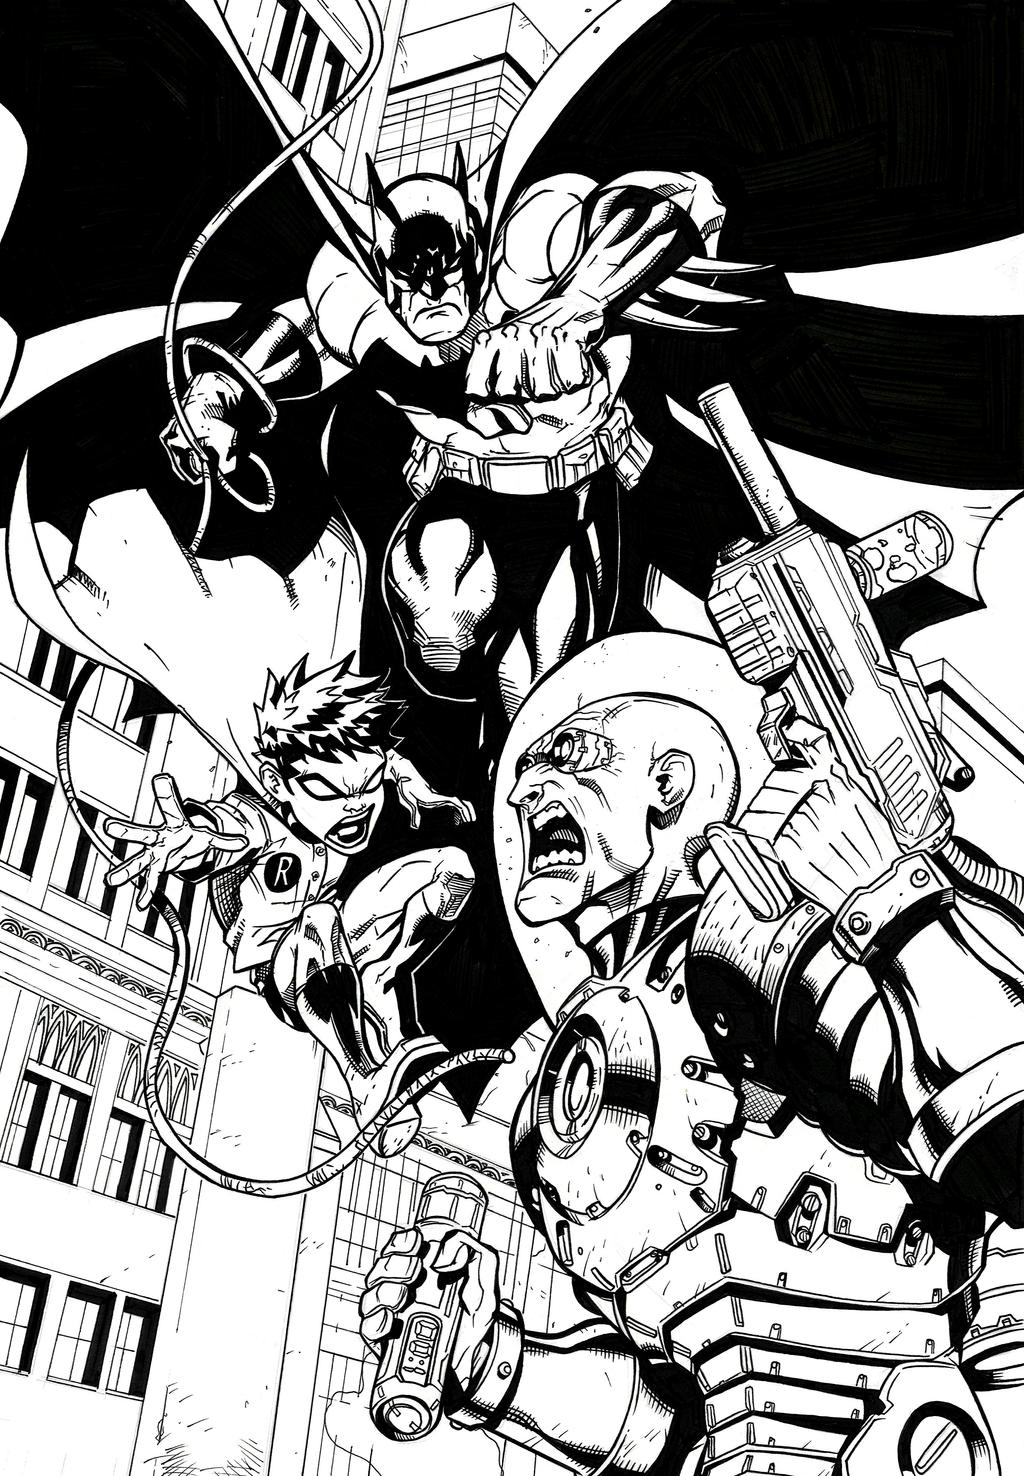 Coloring Pages Mr Freeze Coloring Pages batman and robin vs mr freeze by crausse on deviantart crausse